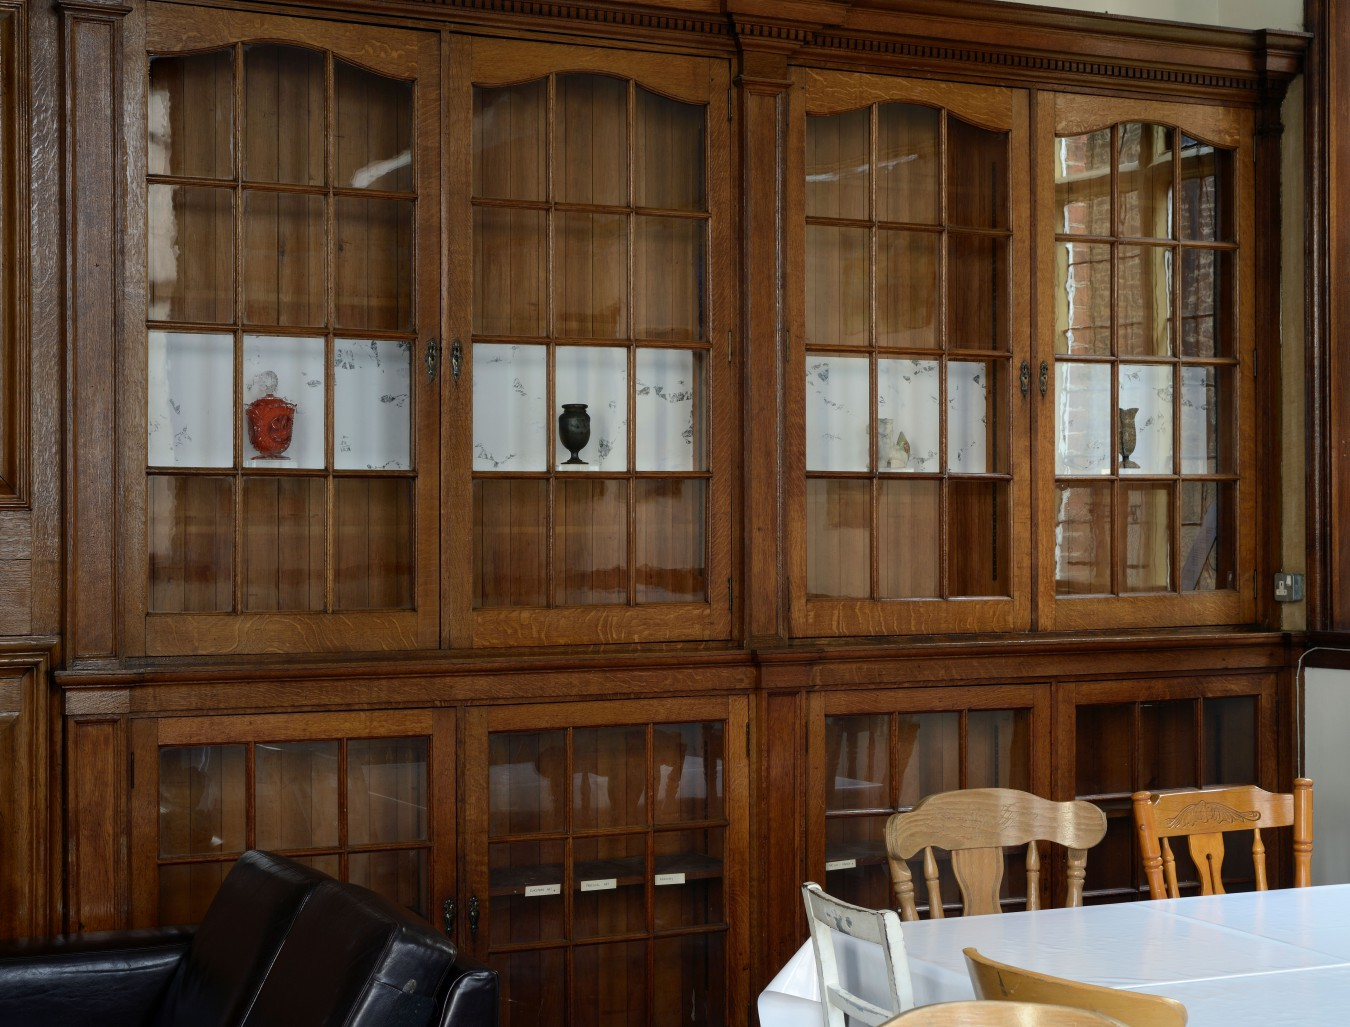 Cafe installation with 4 objects and a drawing in oak book cases.